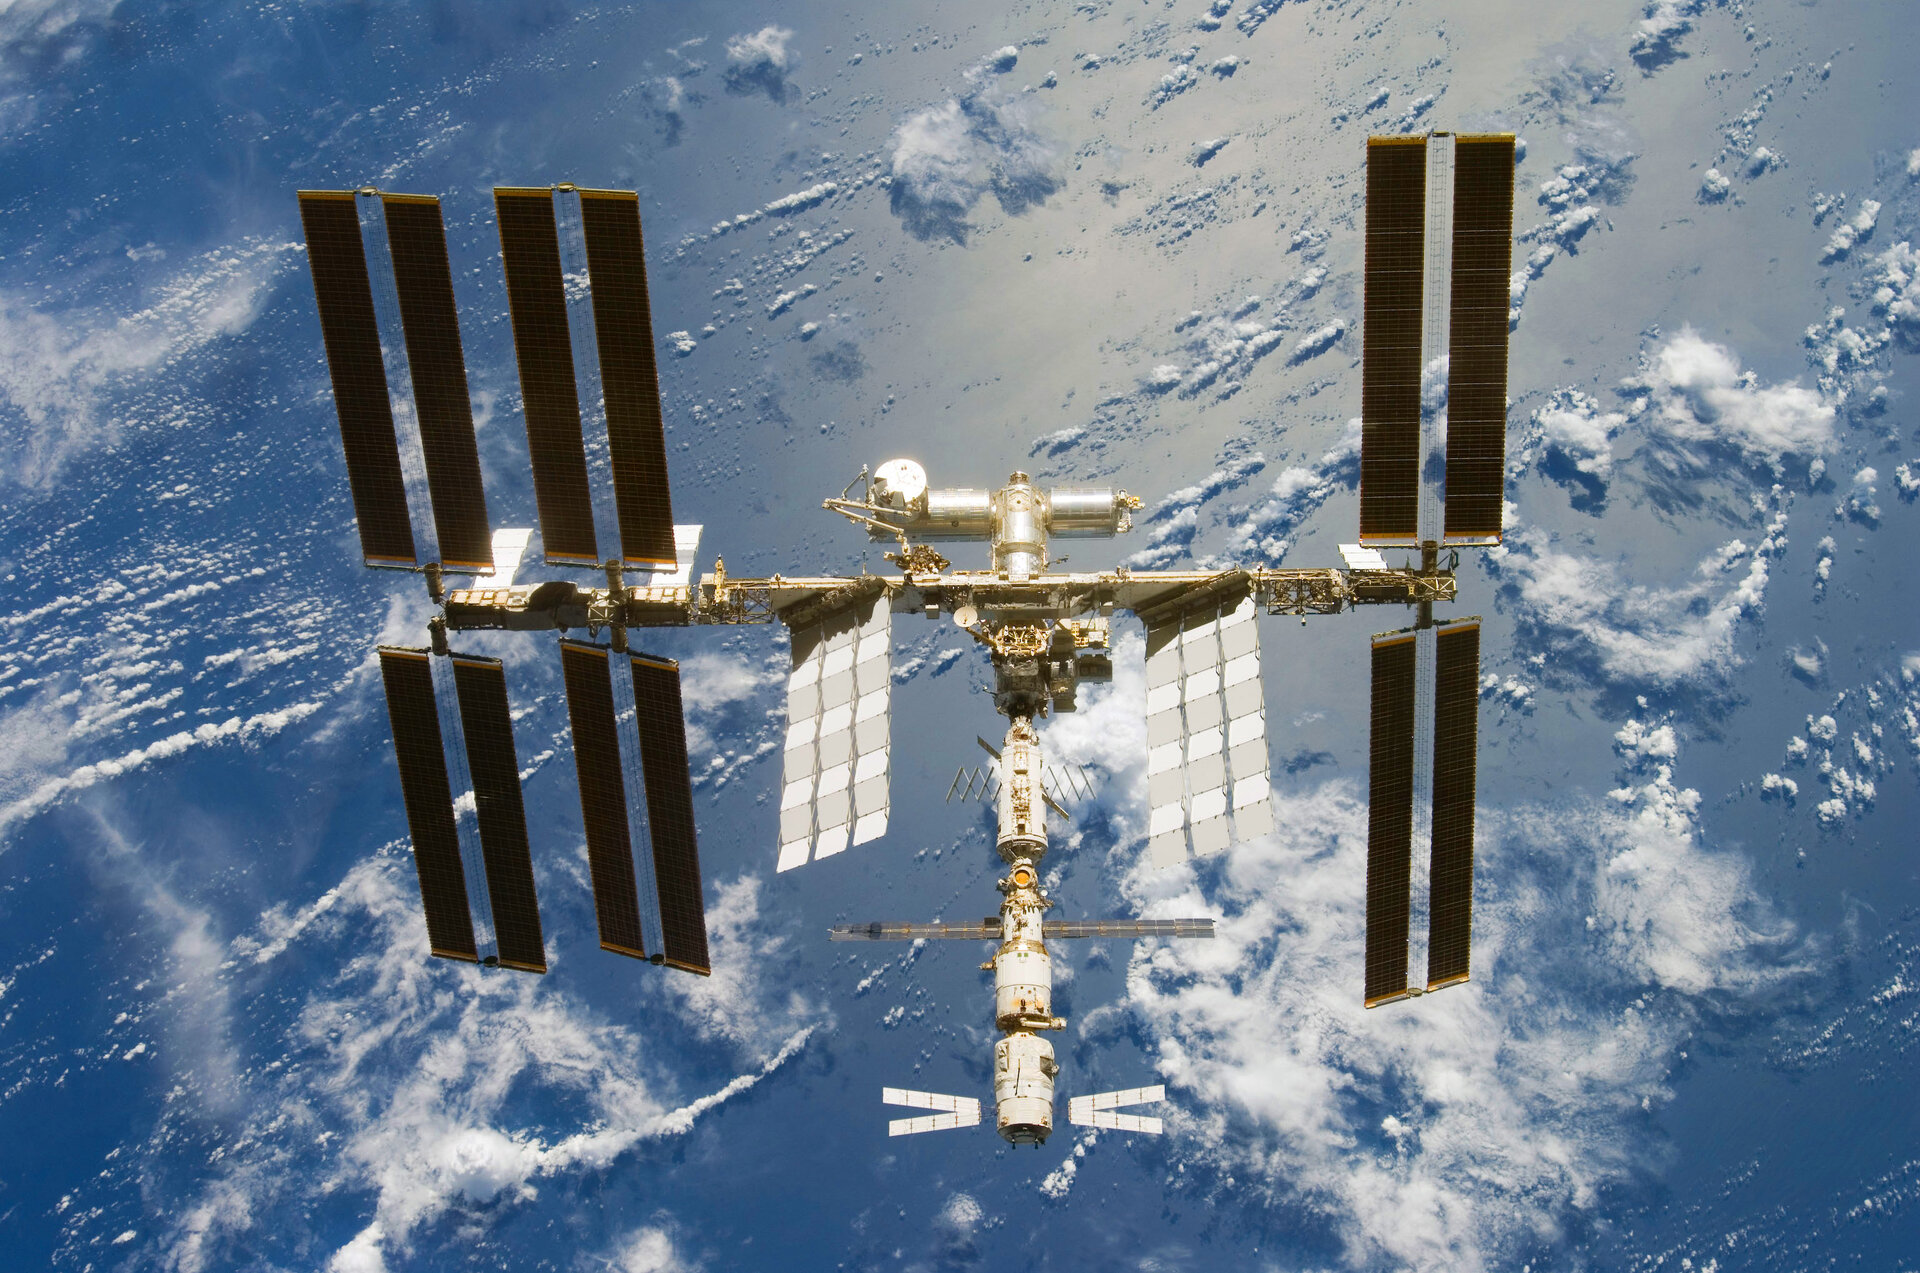 Comparisons between factual and fictional space stations